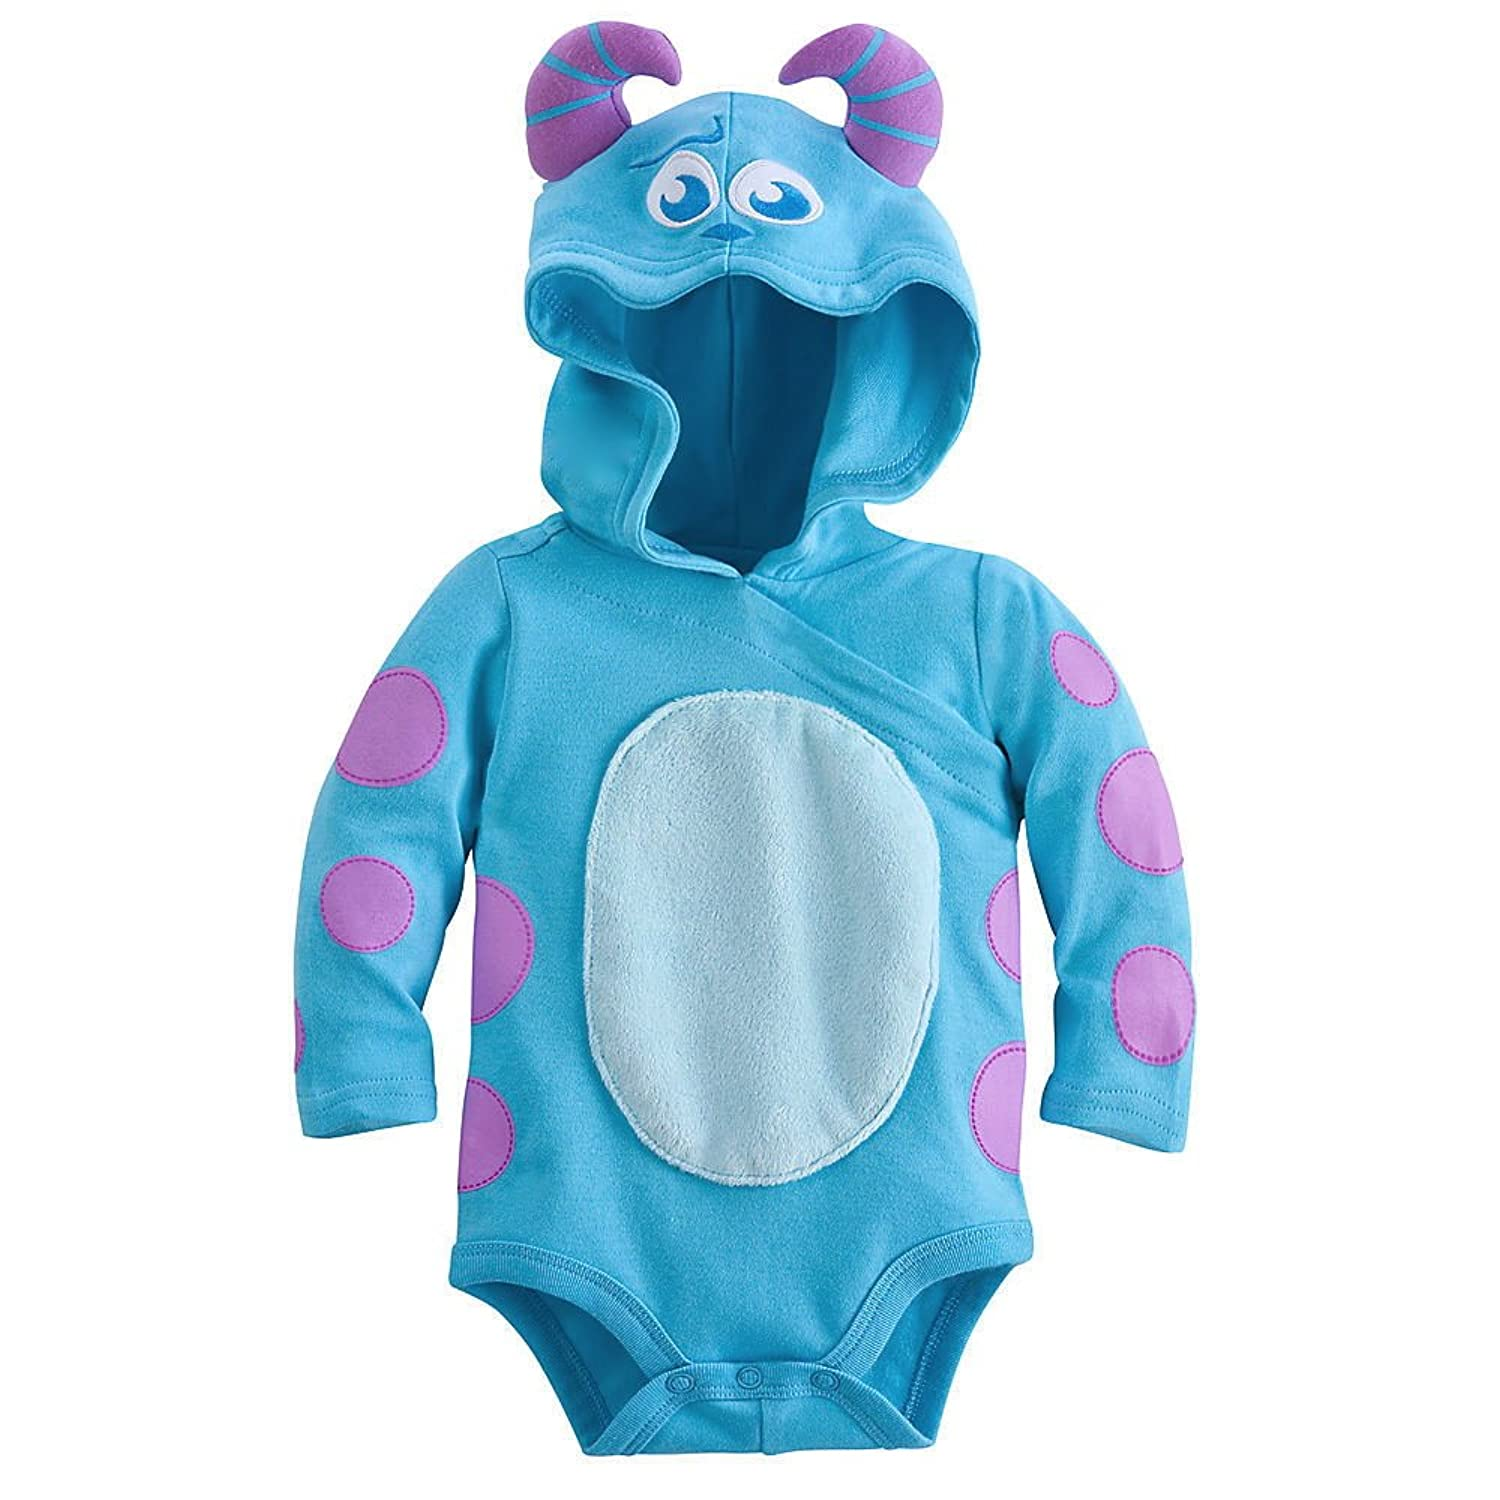 amazoncom disney sulley monsters inc halloween baby costume bodysuit hooded size 6 9 months clothing - Monsters Inc Baby Halloween Costumes